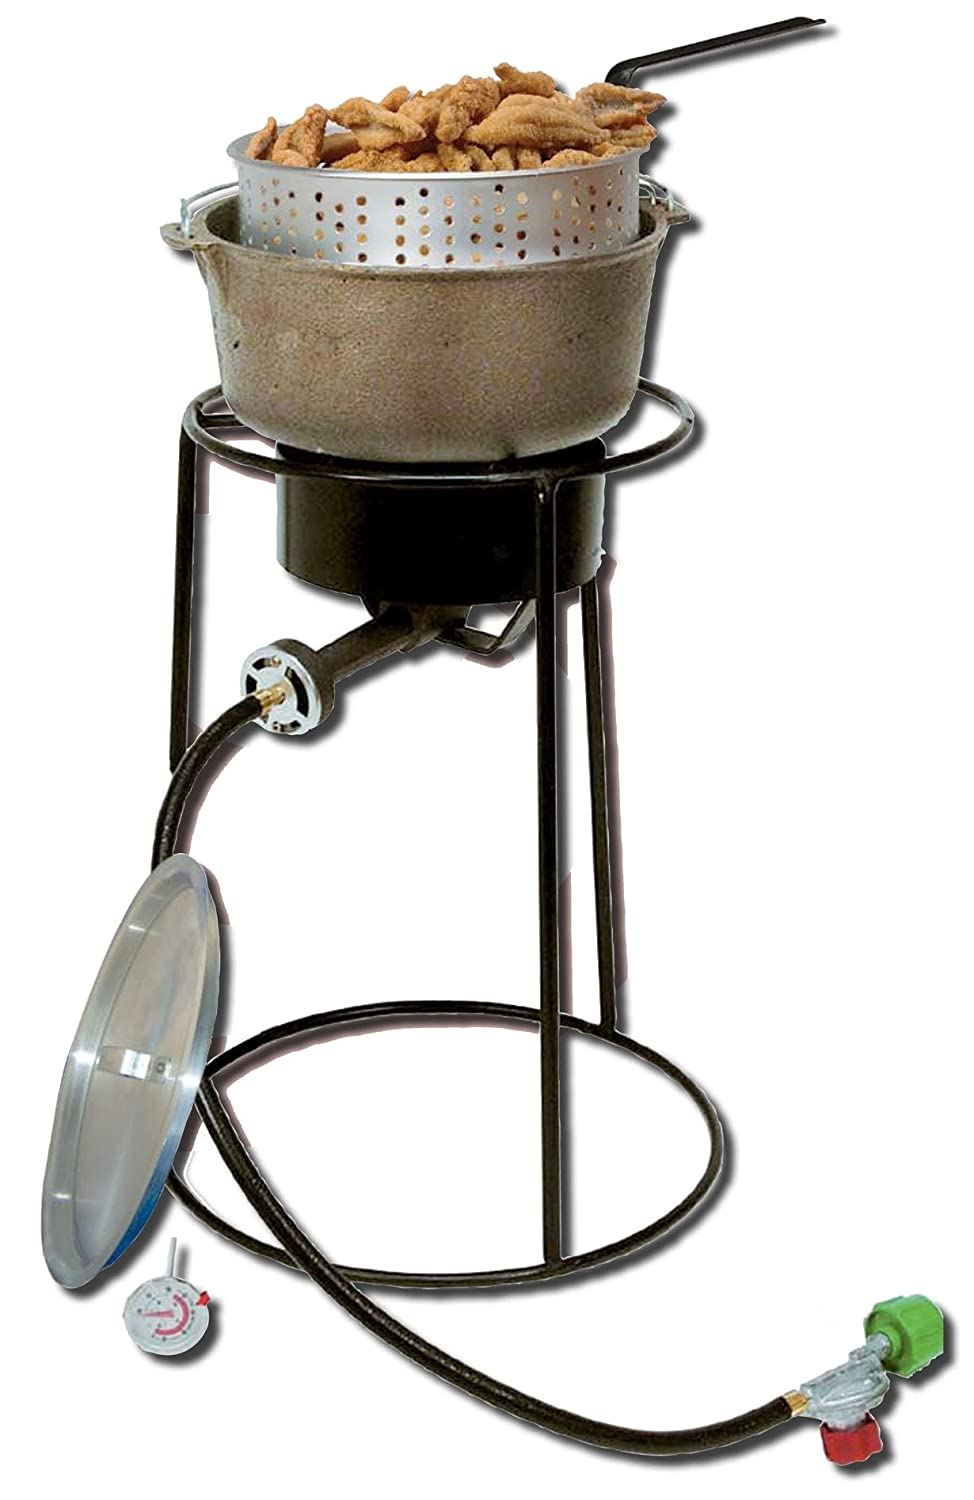 Amazon.com : King Kooker 22PKPTC 20 Inch Propane Outdoor Cooker With  6 Quart Cast Iron Pot : Outdoor Fry Pots : Garden U0026 Outdoor